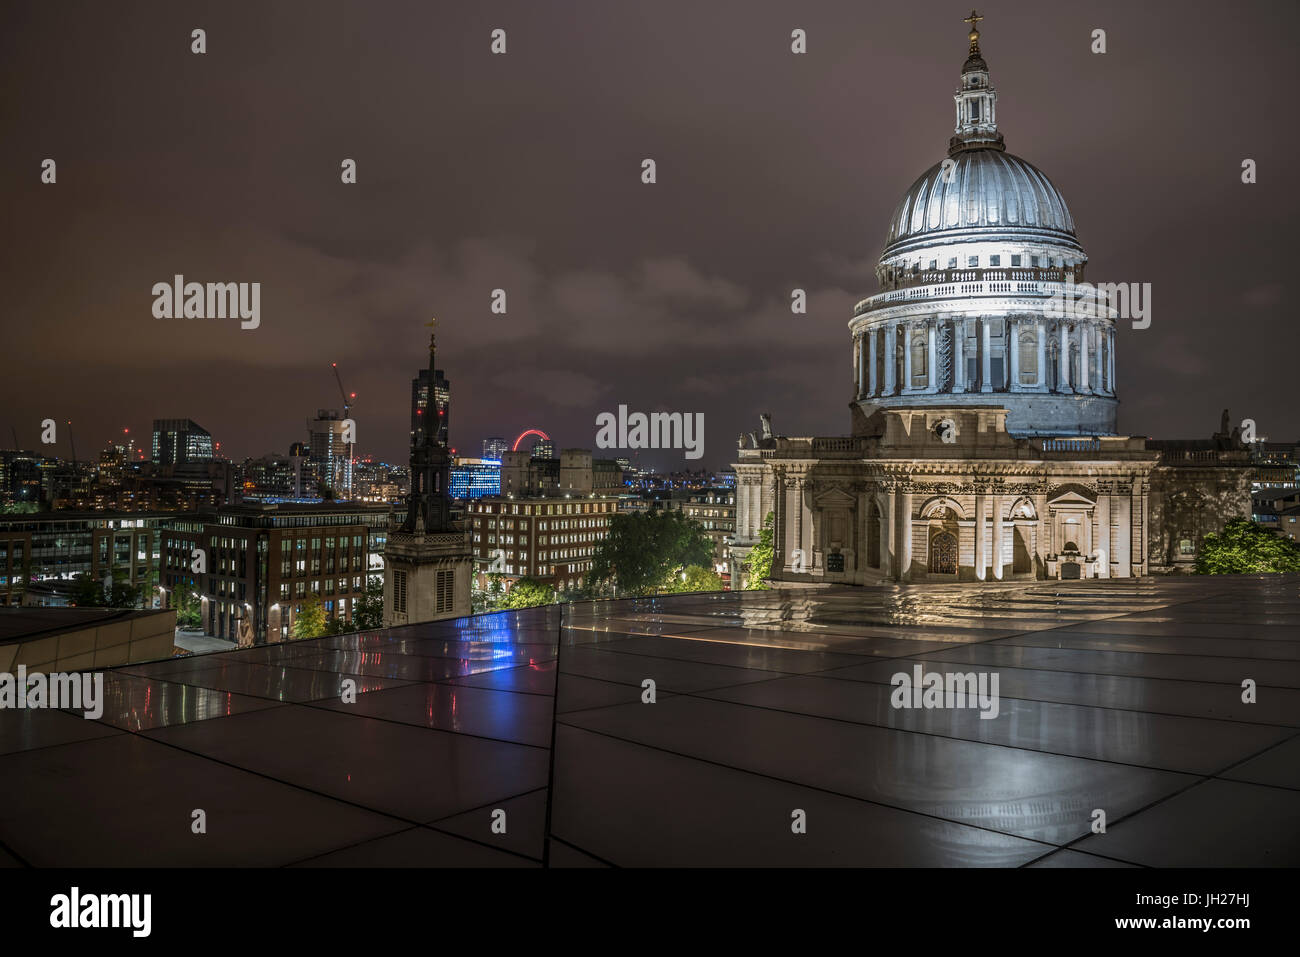 Floodlit dome of St. Pauls Cathedral at night from One New Change, City of London, London, England, United Kingdom, - Stock Image